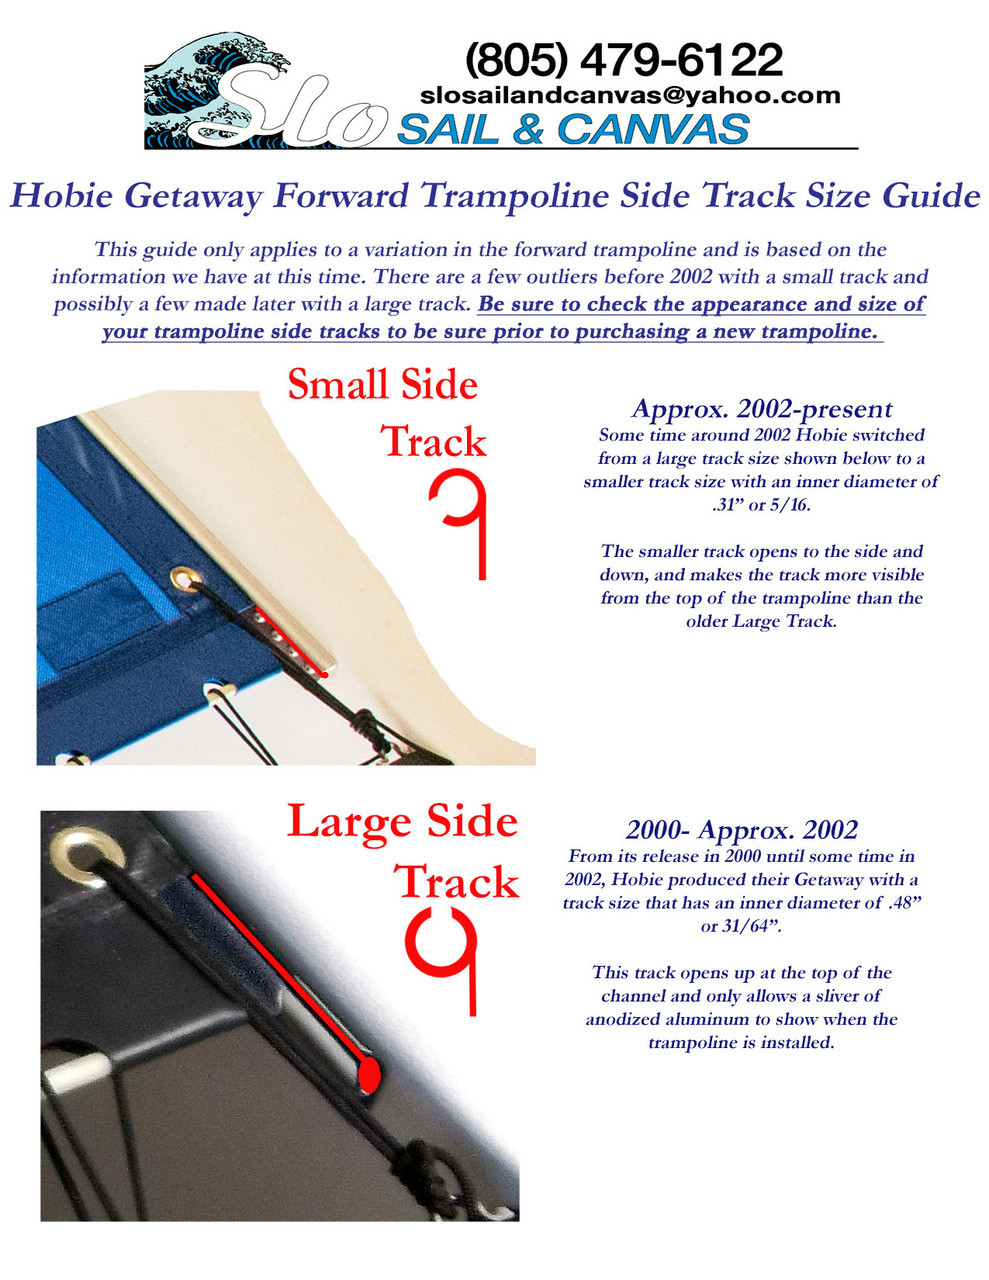 Track Size Guide for Forward Black Bias Cut Black Mesh Trampoline to fit a Hobie® Getaway